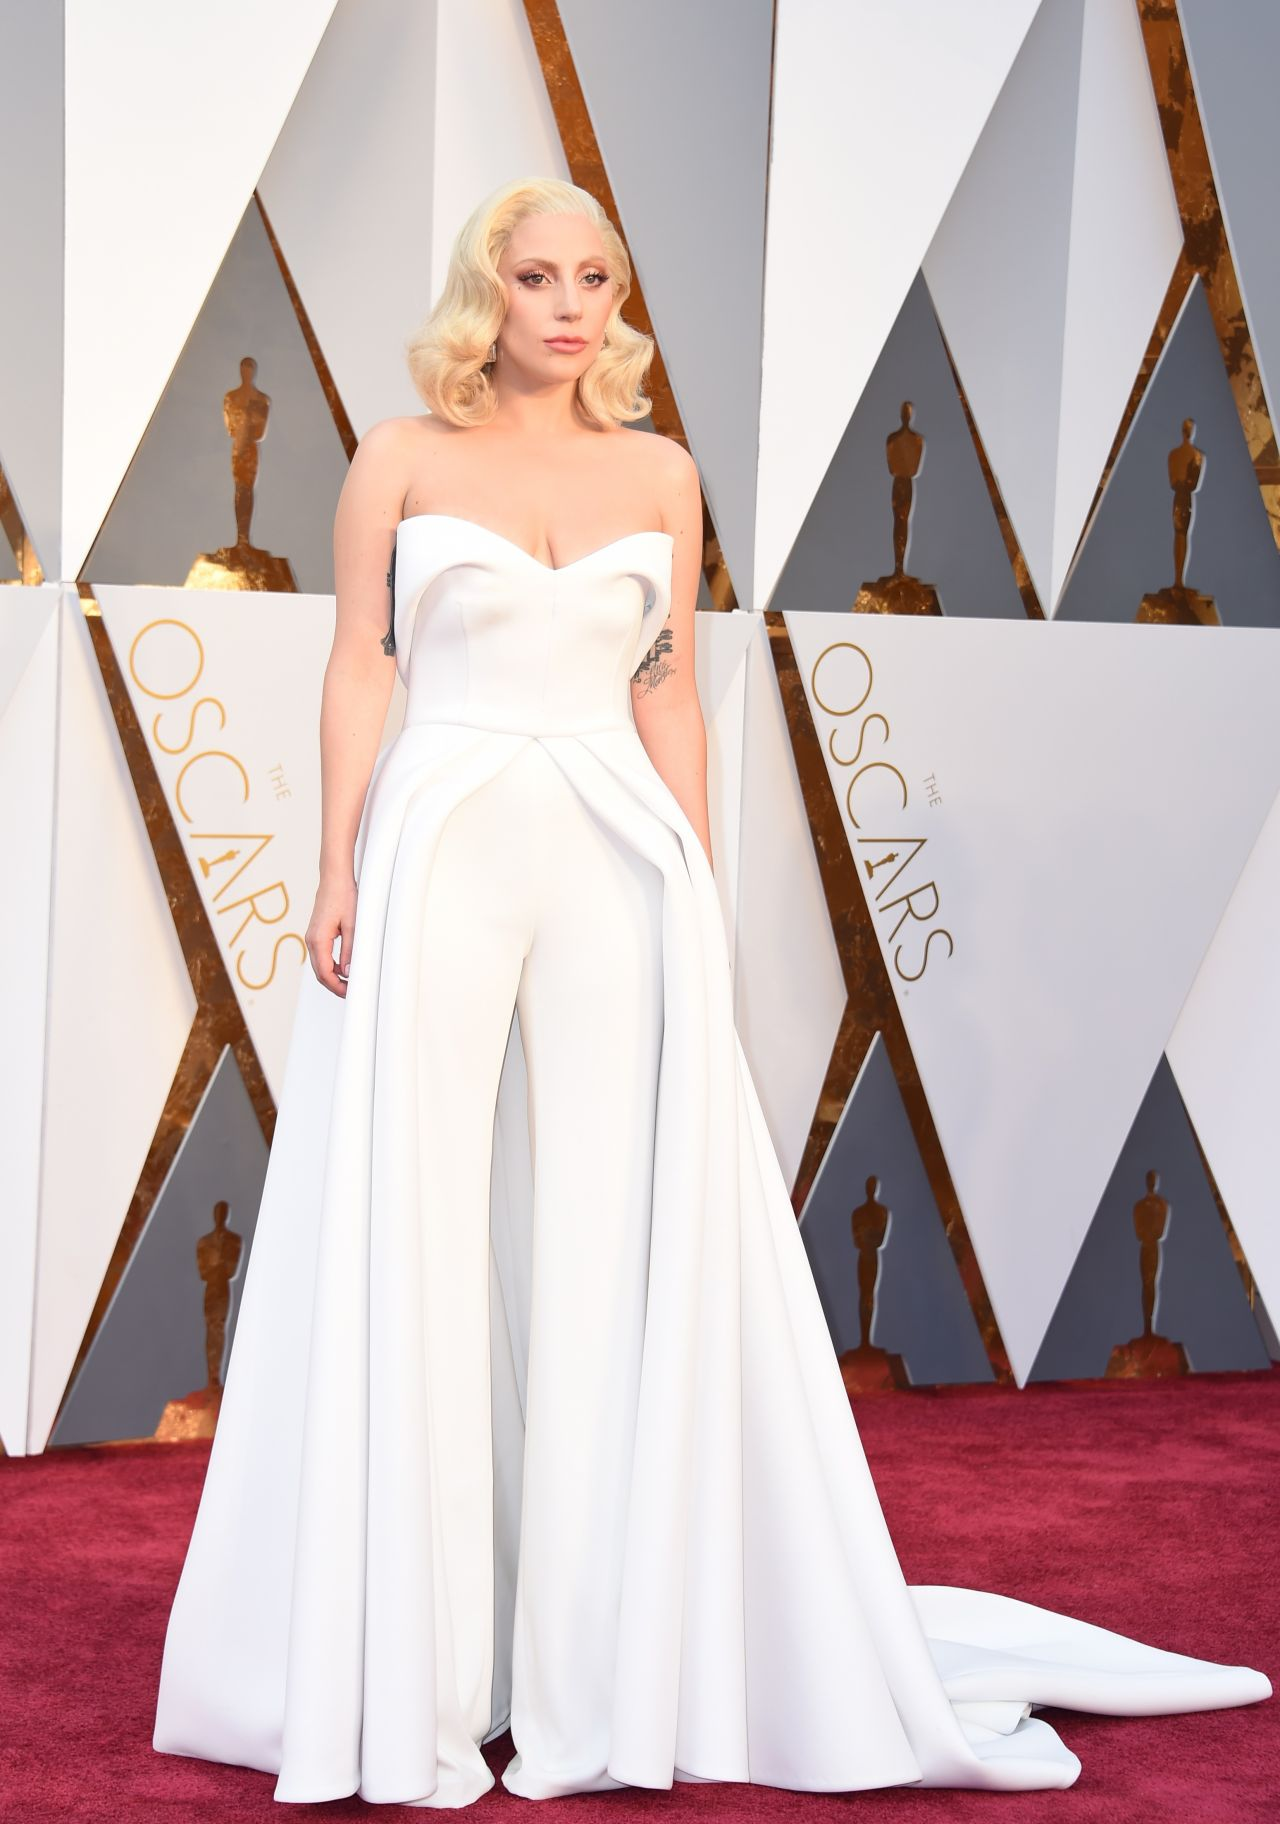 lady-gaga-oscars-2016-in-hollywood-ca-2-28-2016-1